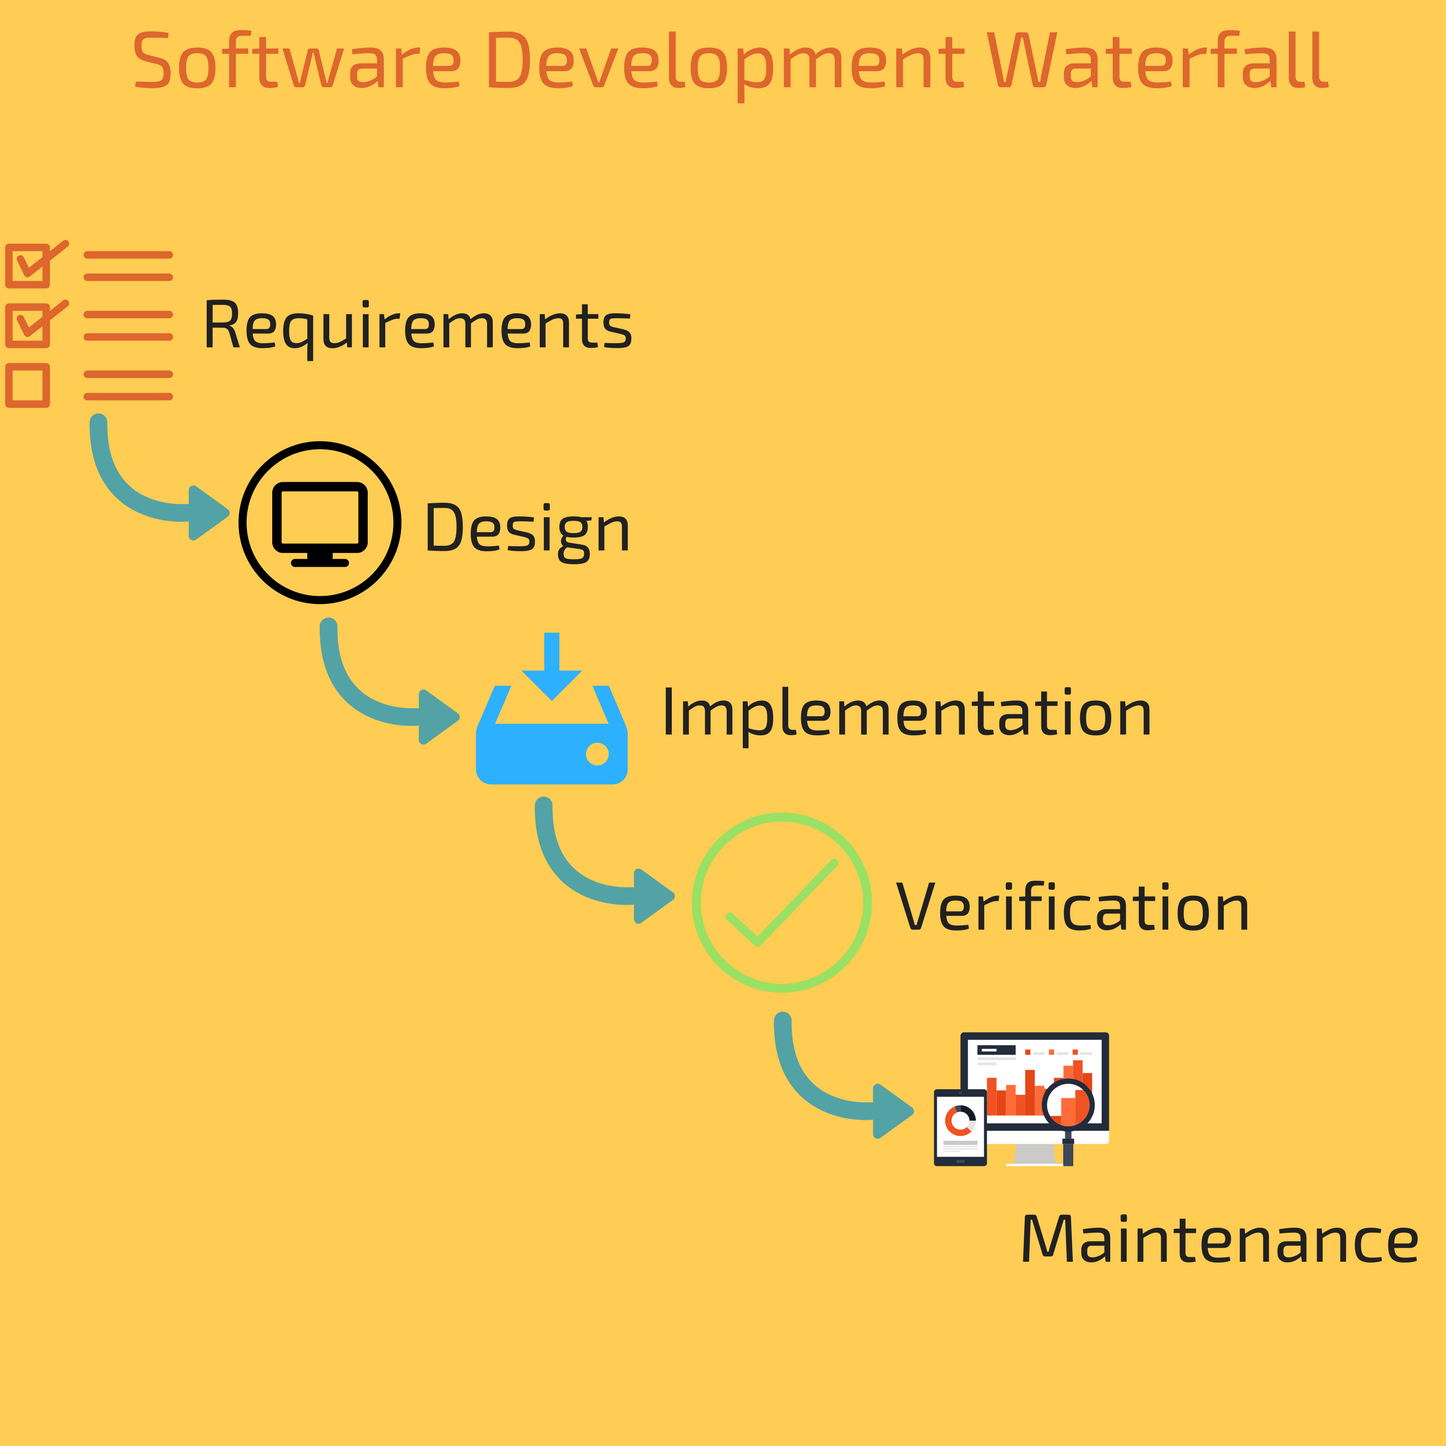 Waterfall Software Development Approach